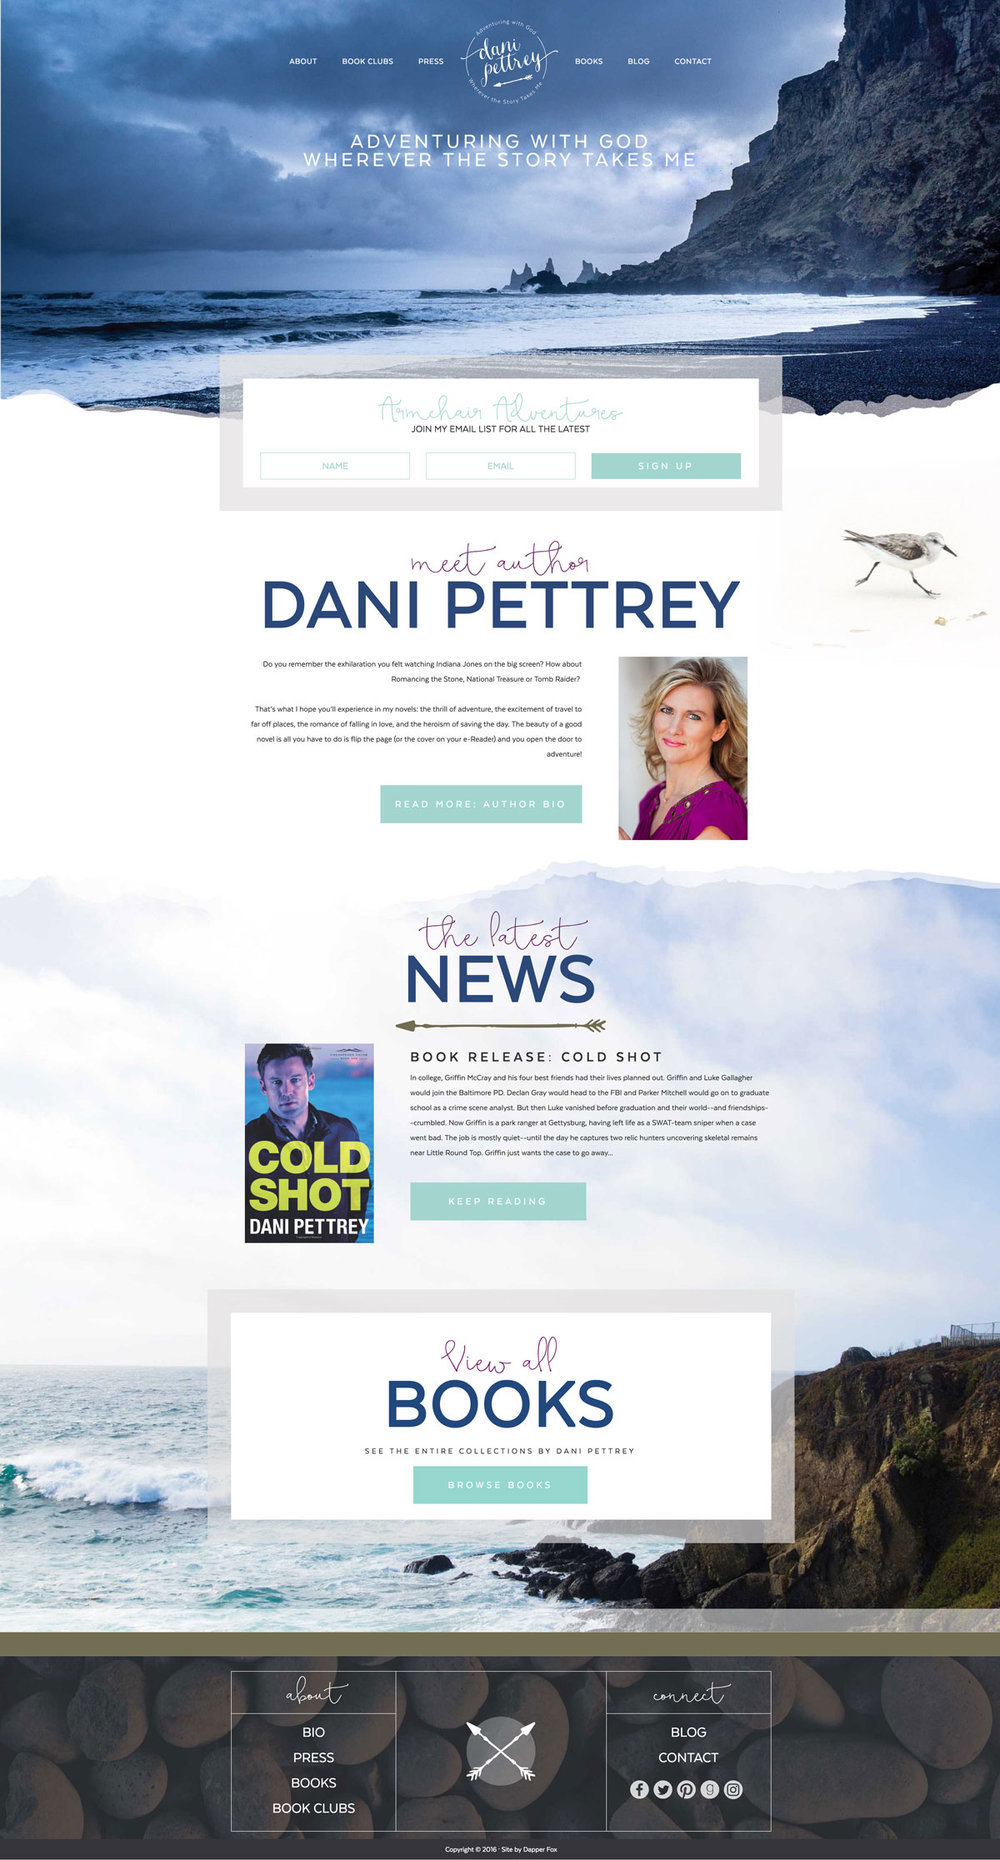 Dani+Pettrey+Wordpress+Website+and+Branding+Design+#Coastal+#Beach+#Ocean+#Design+#Modern.jpeg